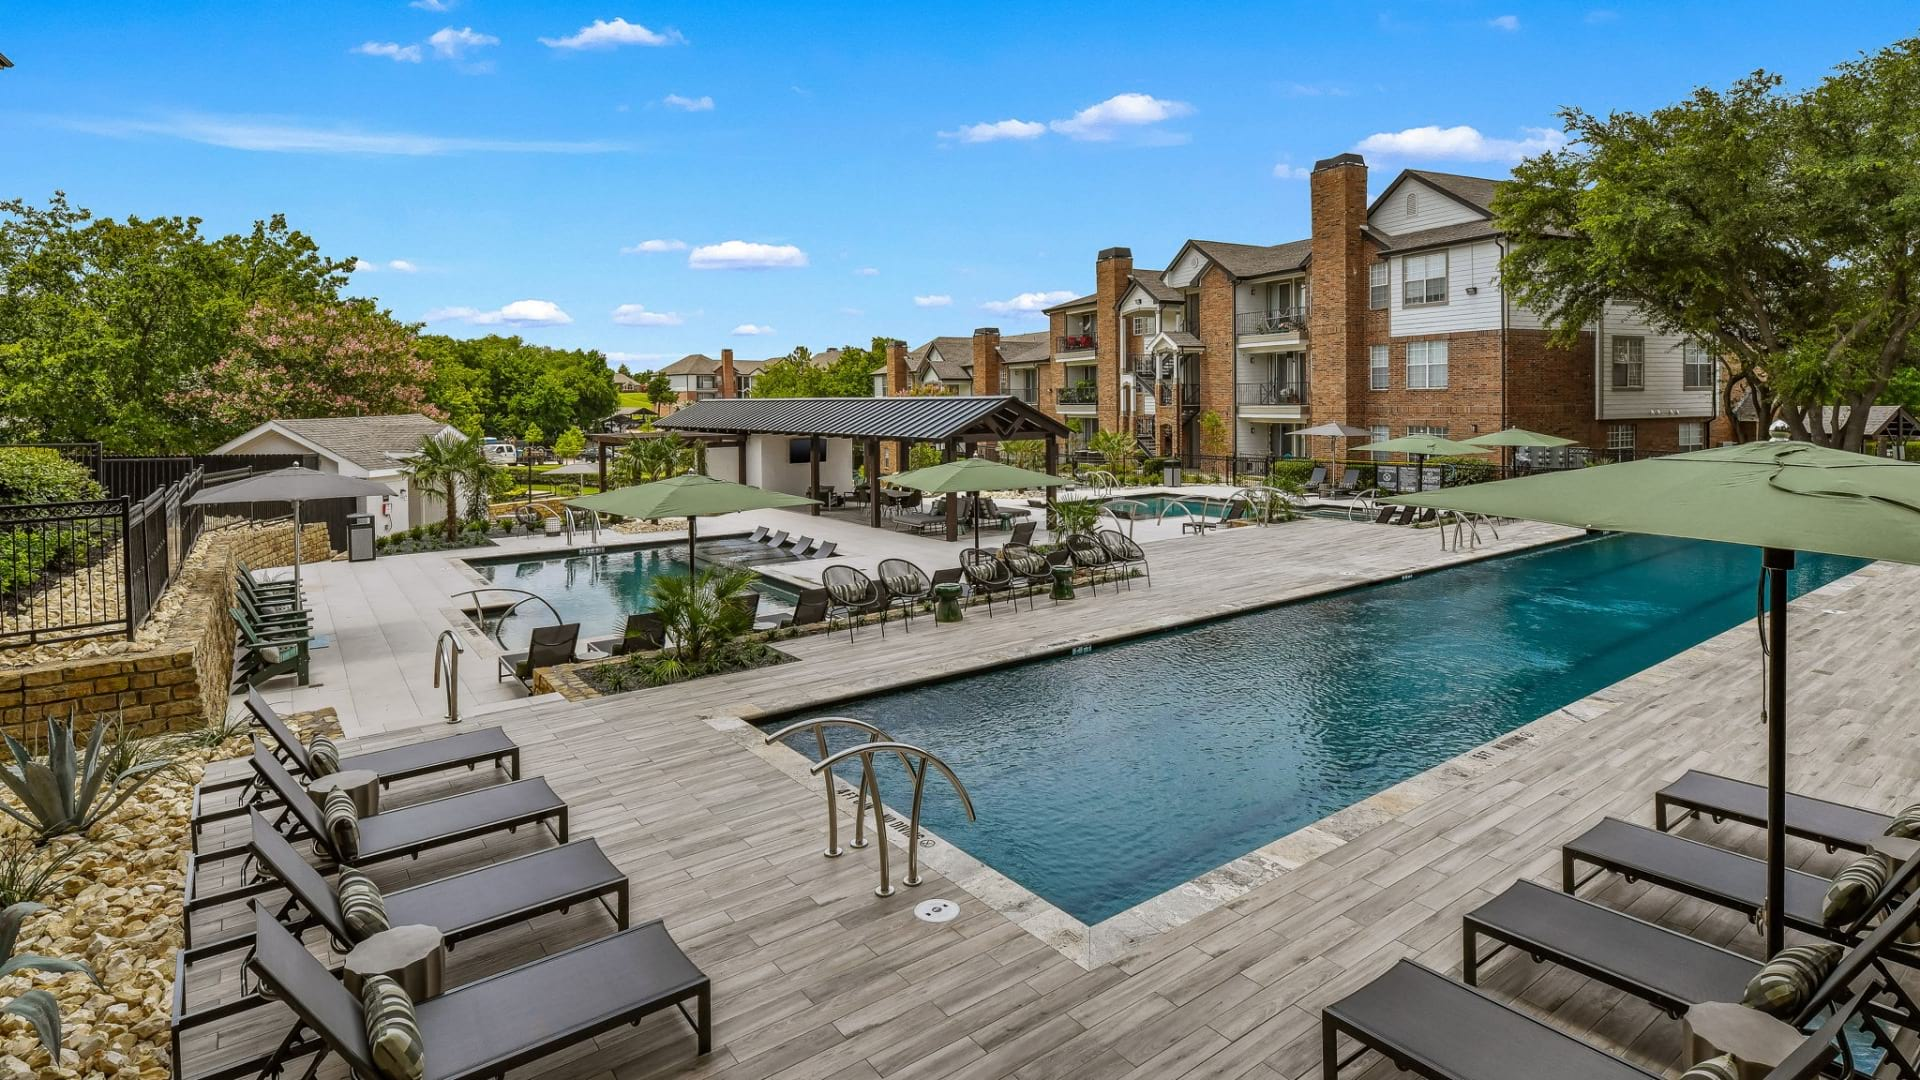 Plano apartment pool with sun deck